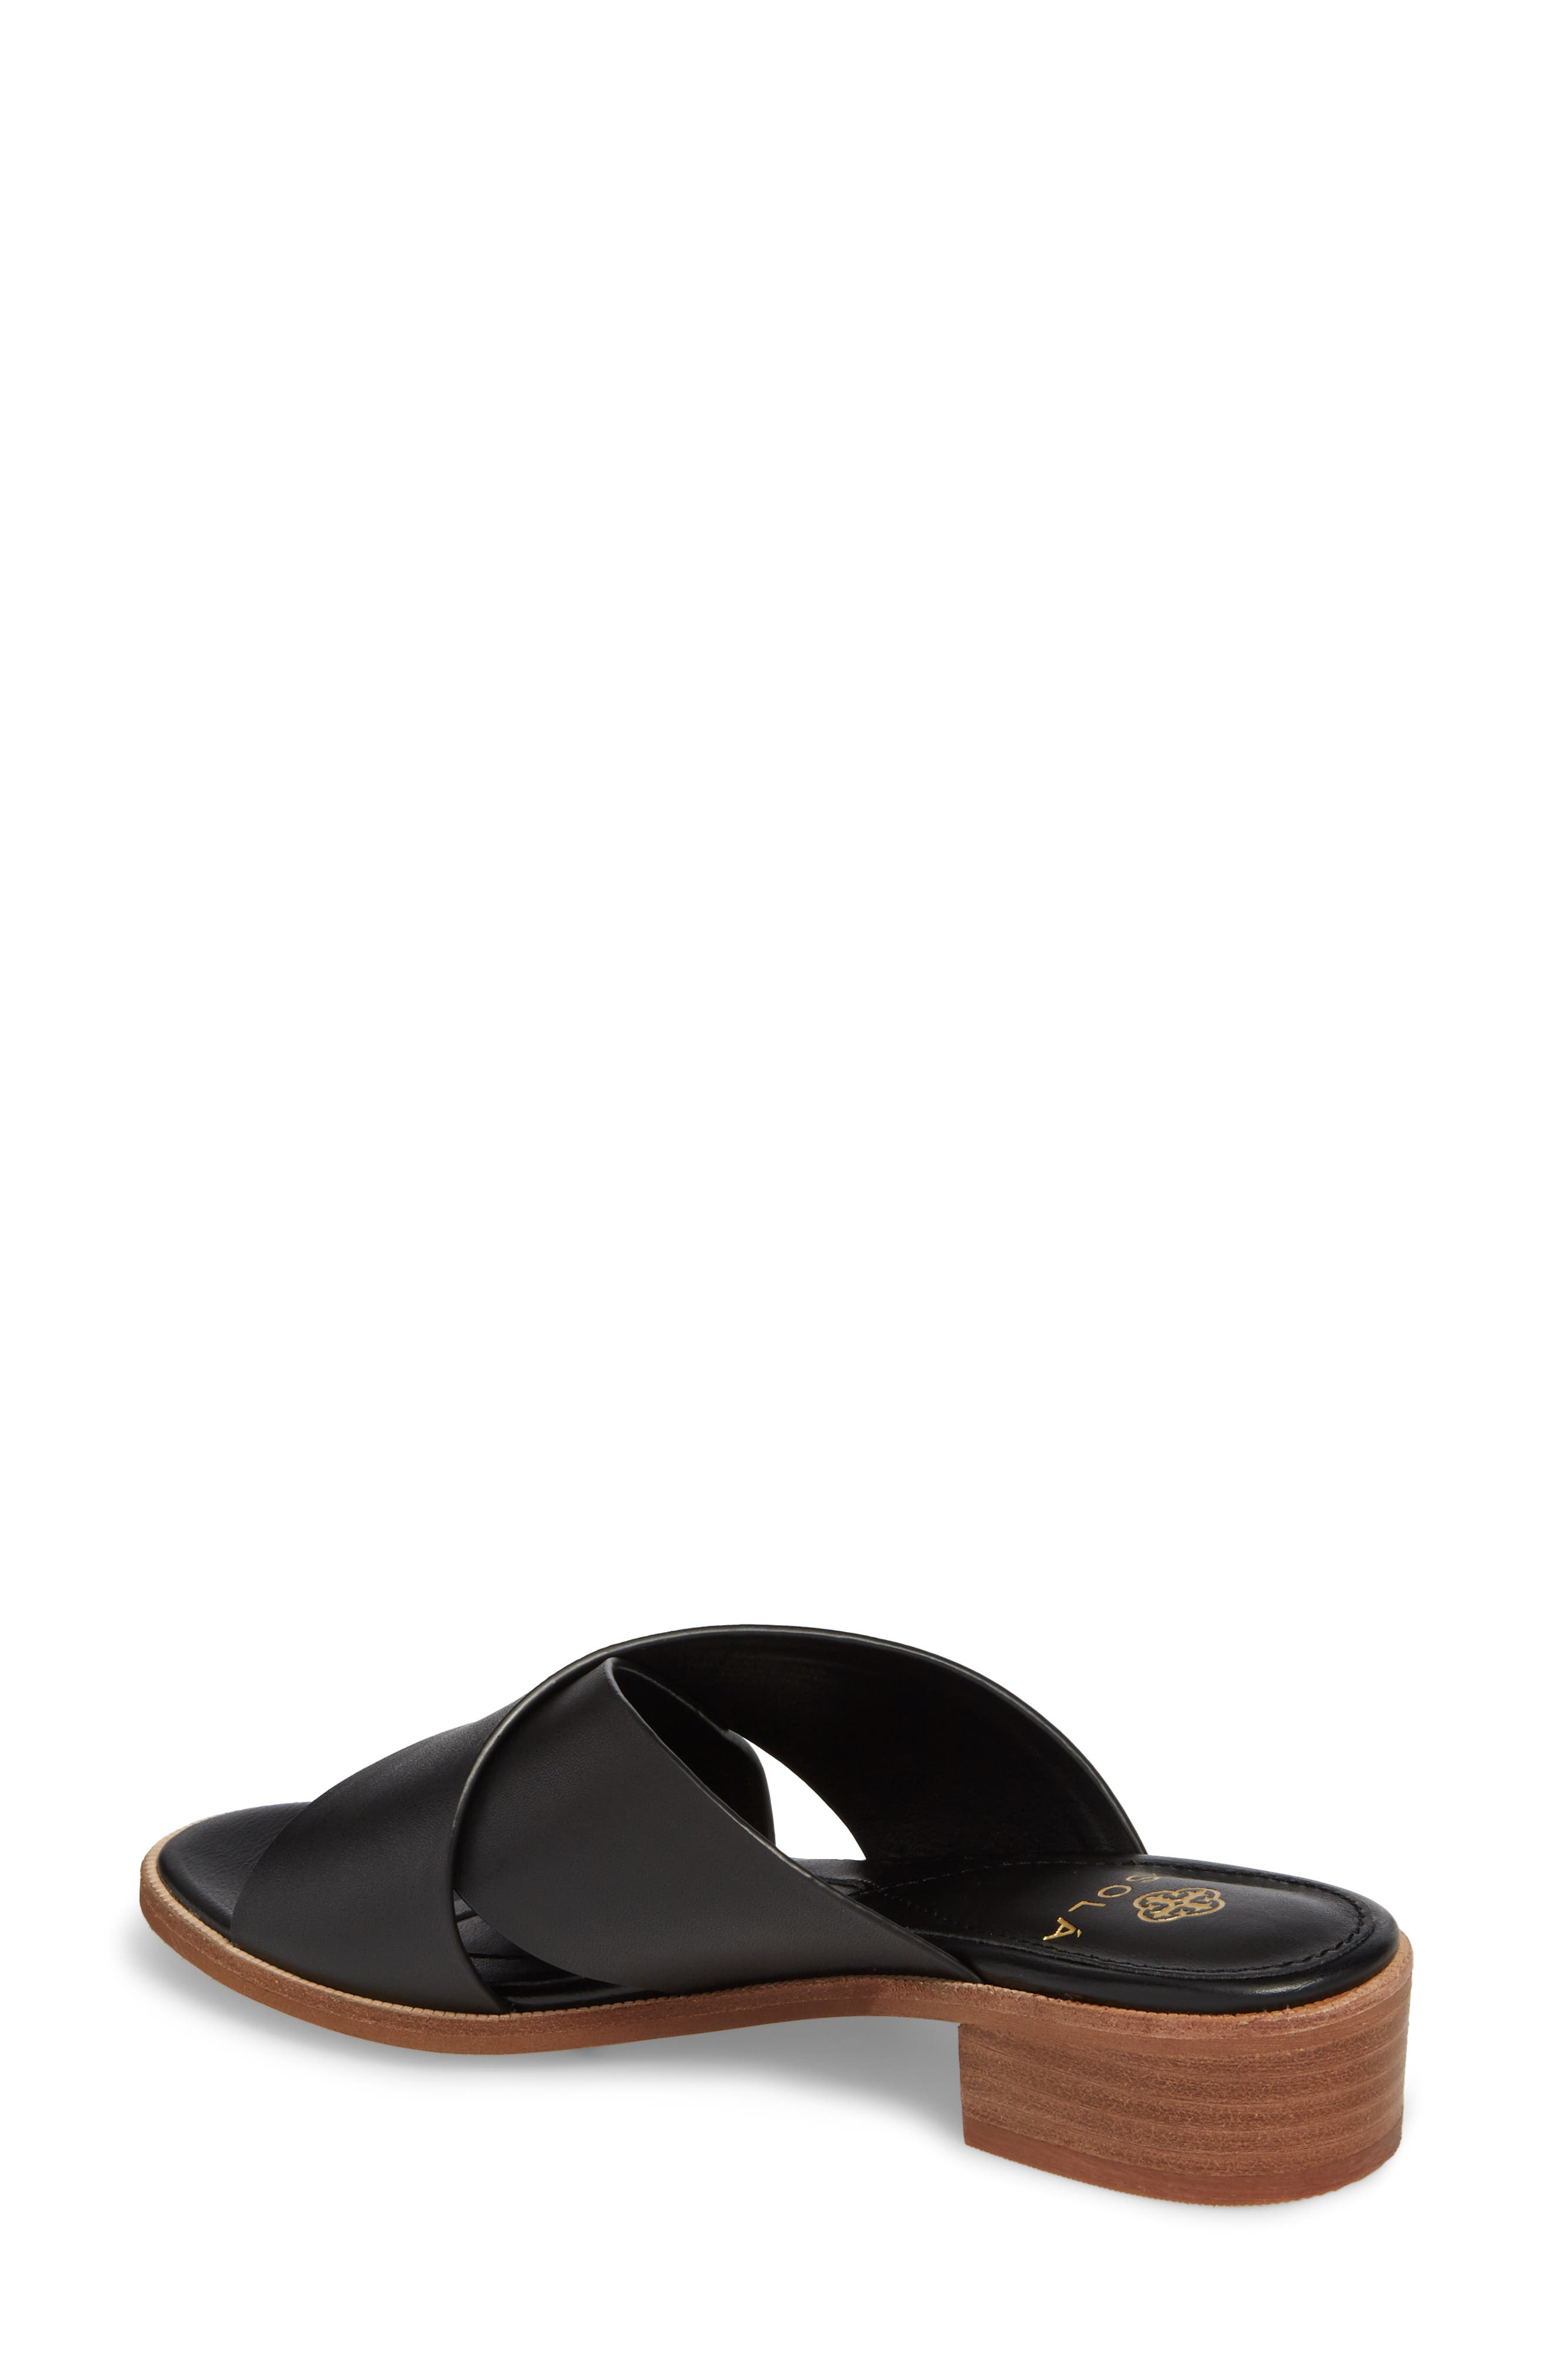 Isola Ginata Slide Sandal,                             Alternate thumbnail 2, color,                             Black Leather